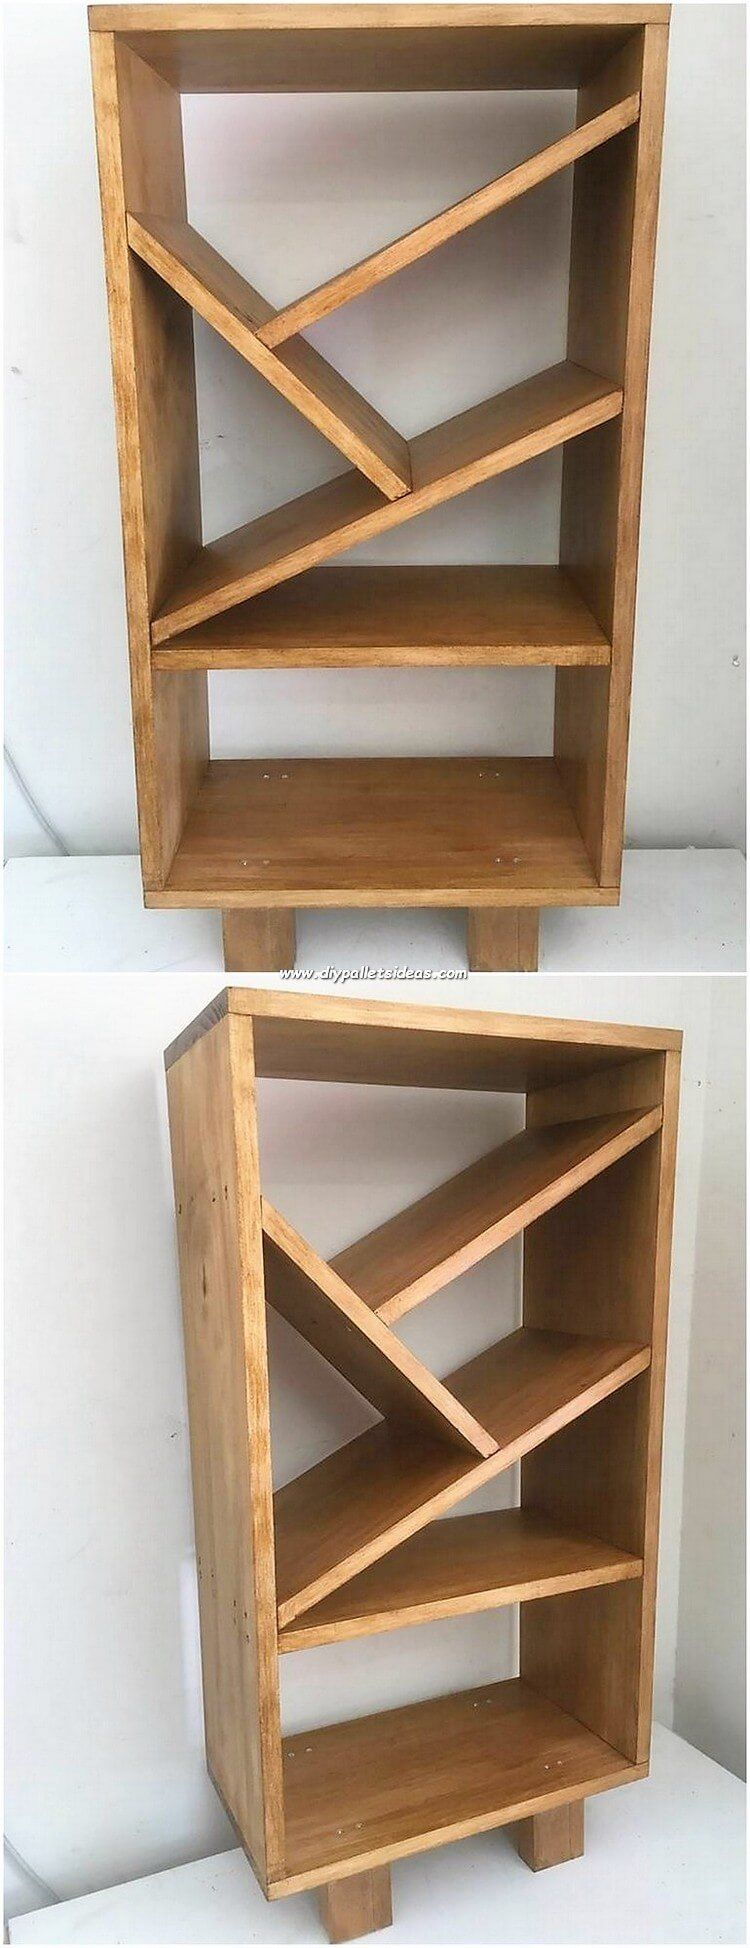 inconceivable ideas with recycled wood pallets wood on inventive ideas to utilize reclaimed wood pallet projects all you must to know id=84929